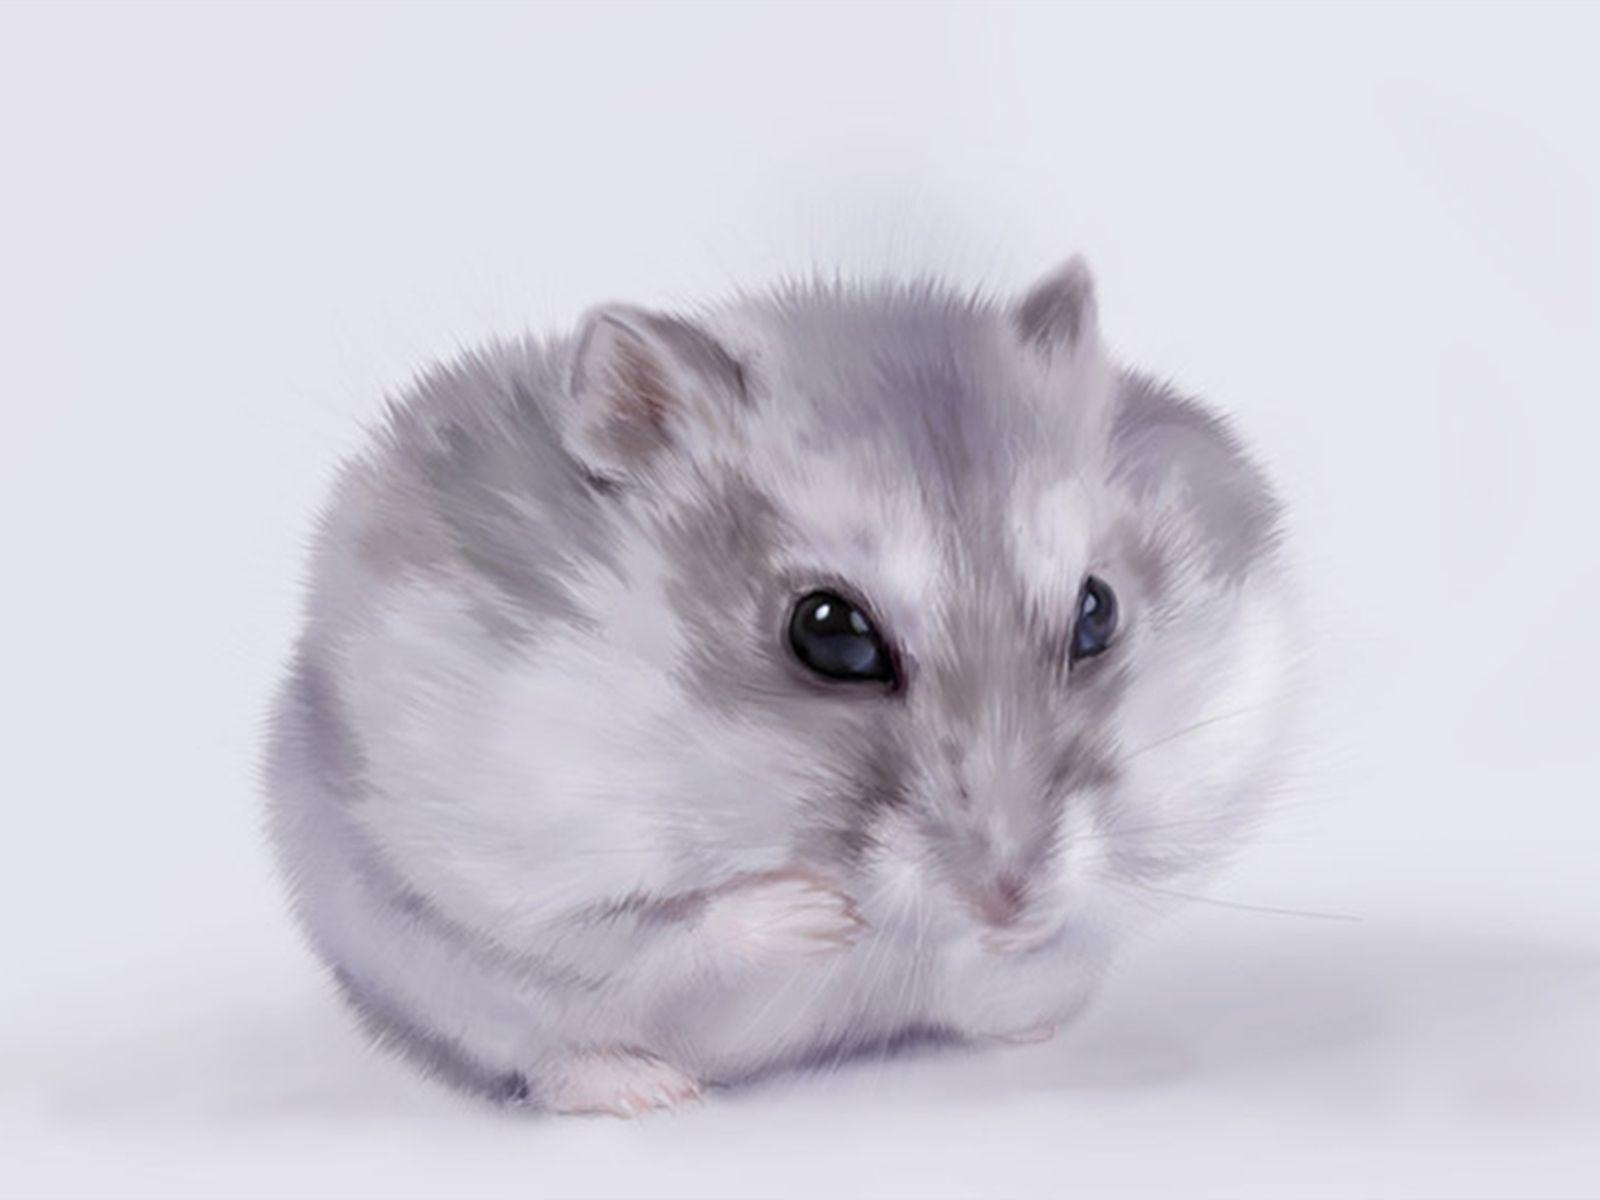 Cute hamster wallpaper Animal wallpapers | Hamster Care Guide Tips ...